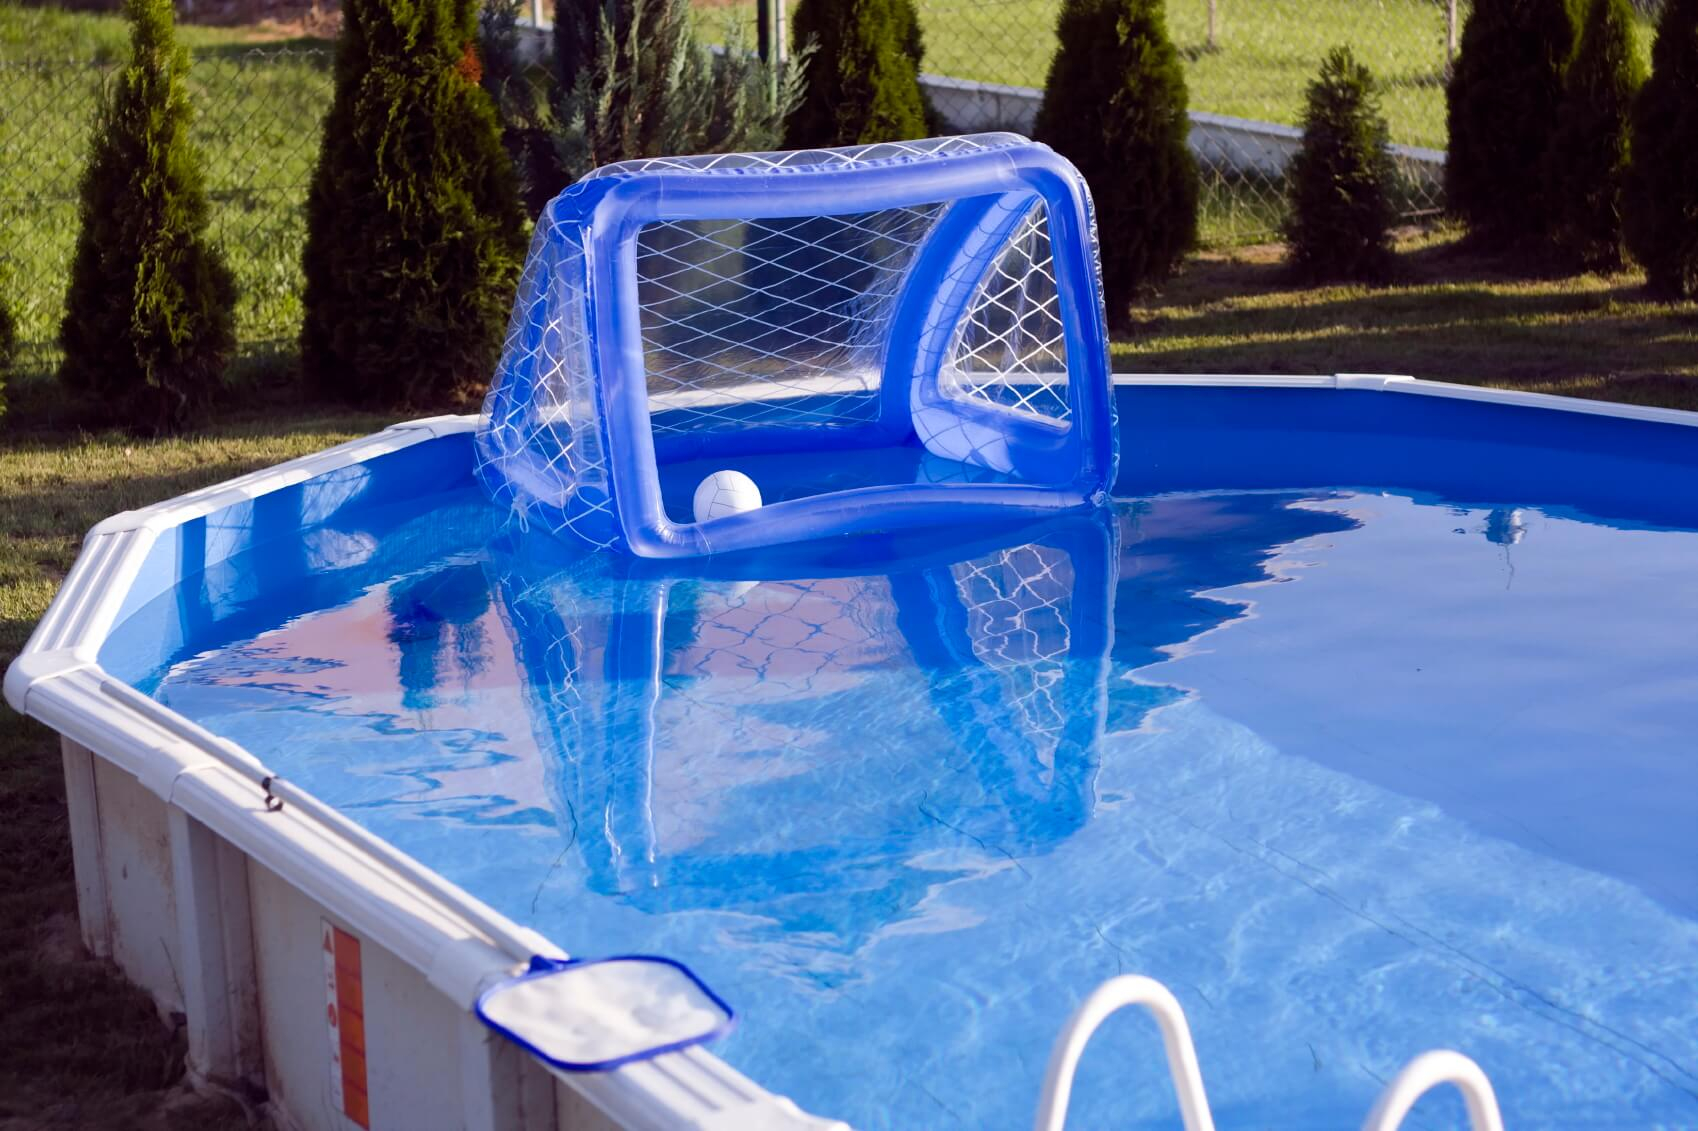 14 Great Above Ground Swimming Pool Ideas inside Backyard Above Ground Pool Ideas